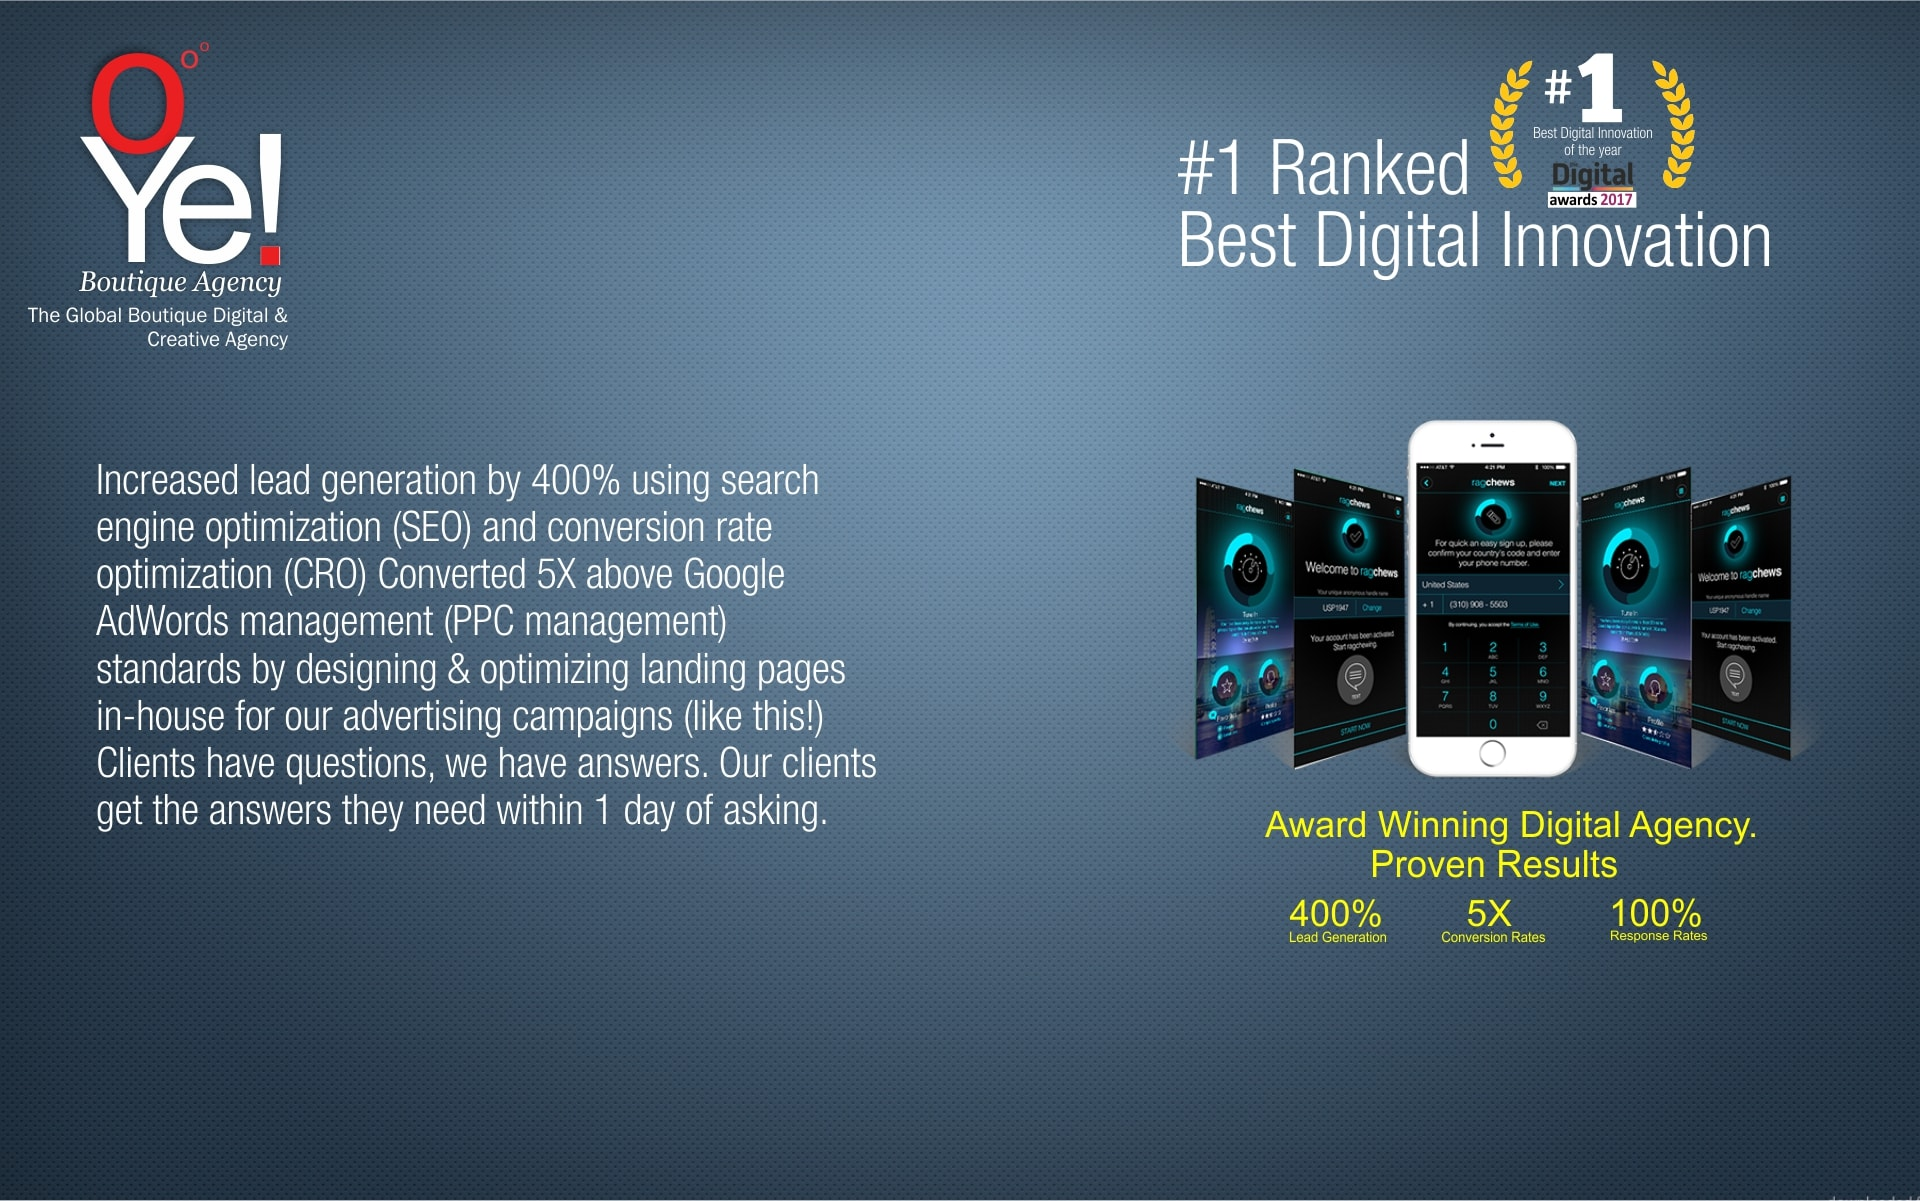 1 Ranked Best Digital Innovation